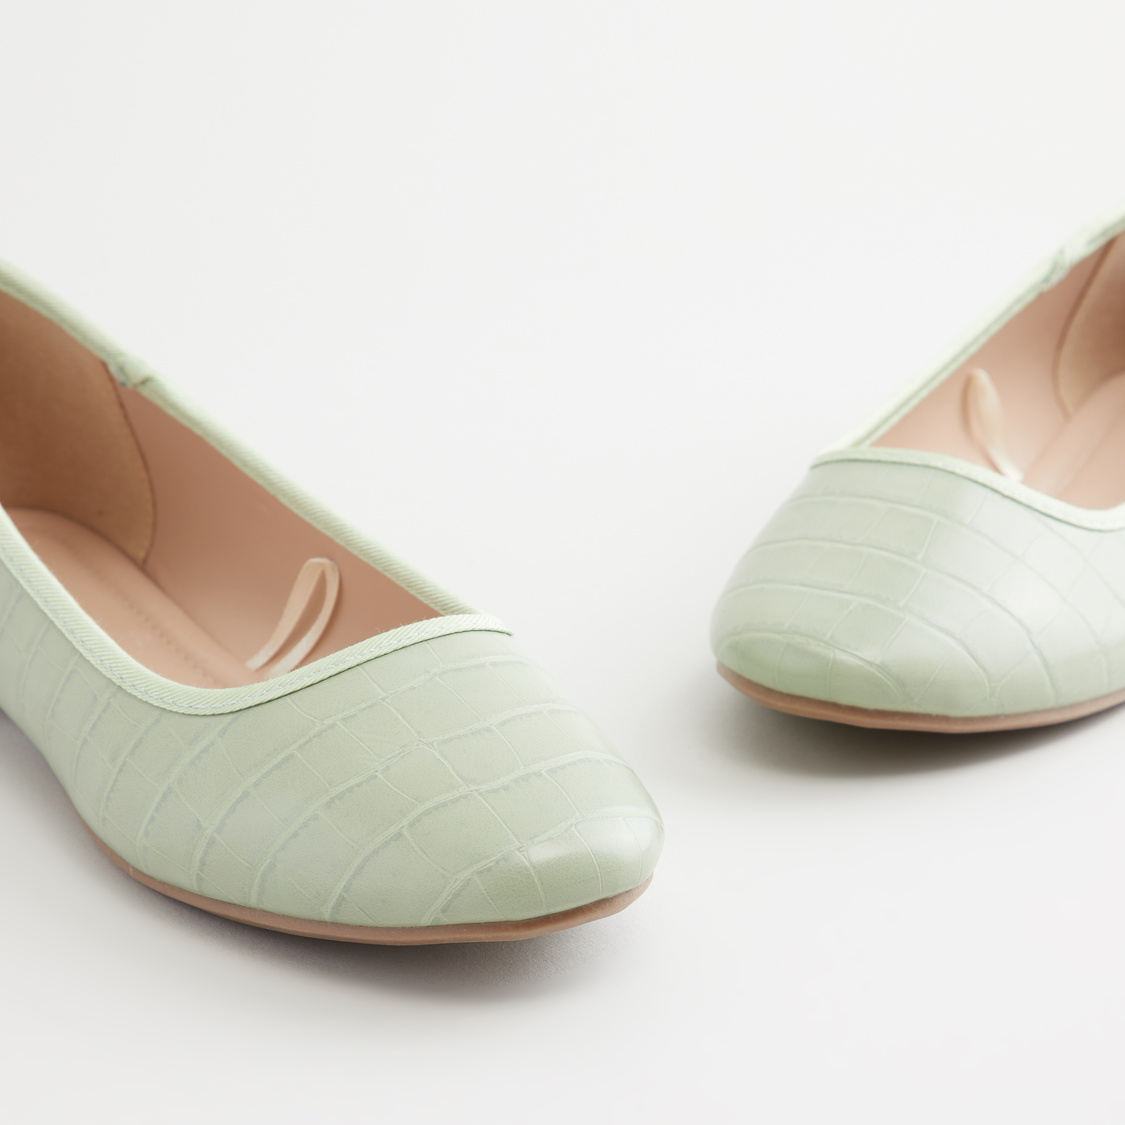 Textured Ballerinas